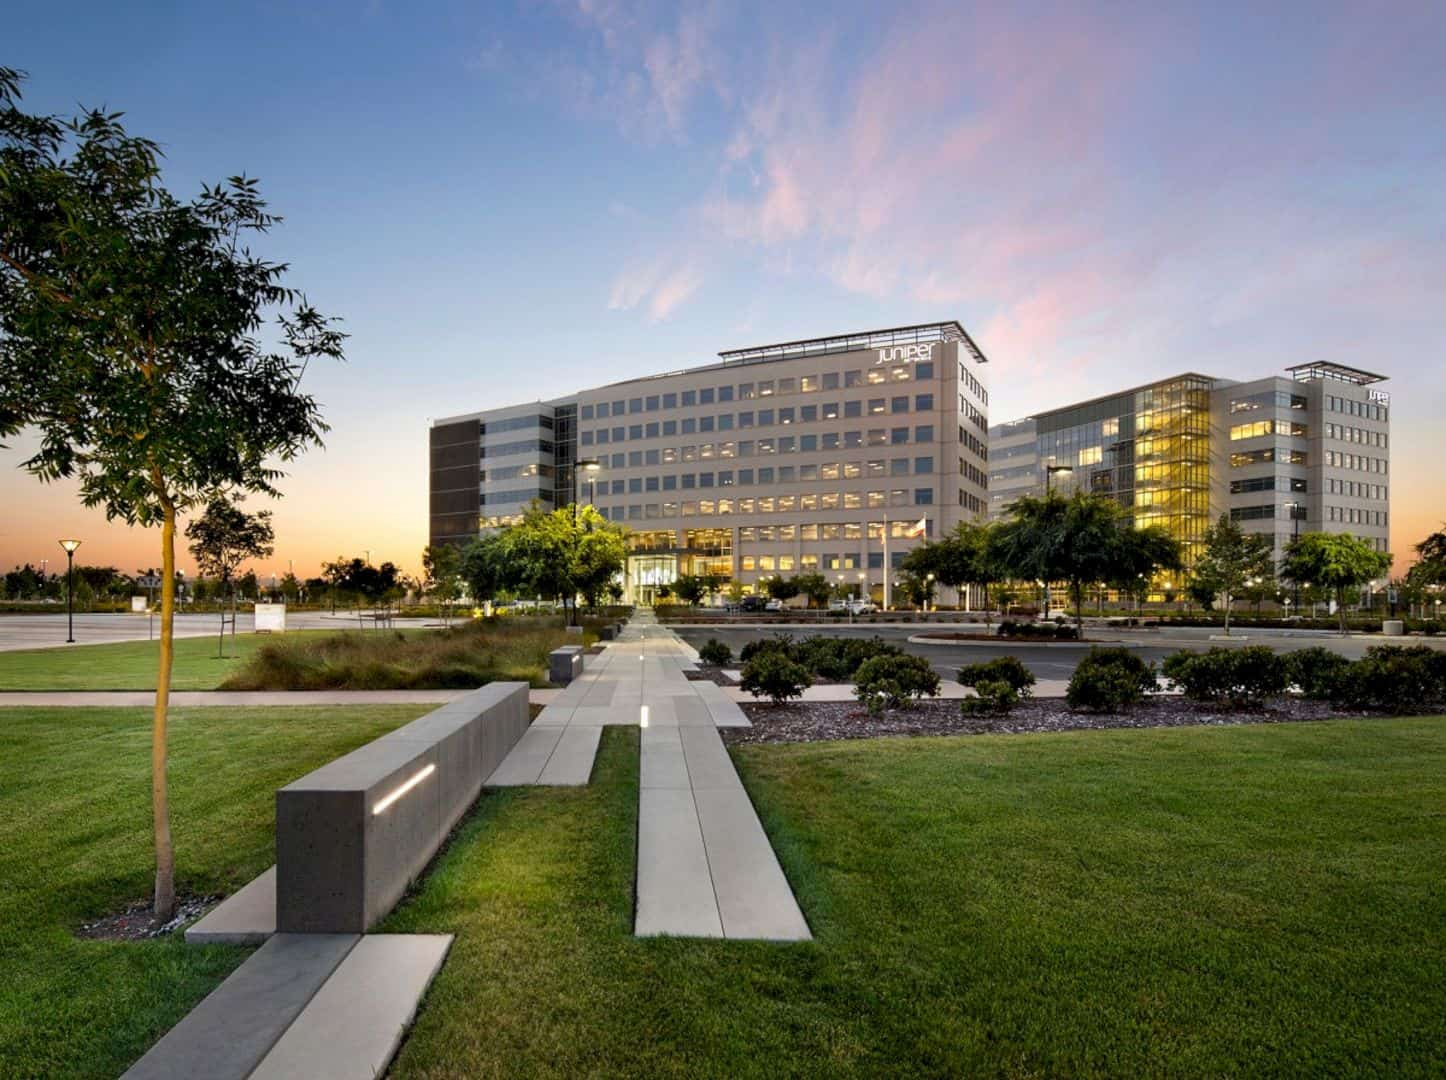 Juniper Networks, Inc. Headquarters Campus: An Engineering-Driven Company Supporting Rapid Change and Collaboration